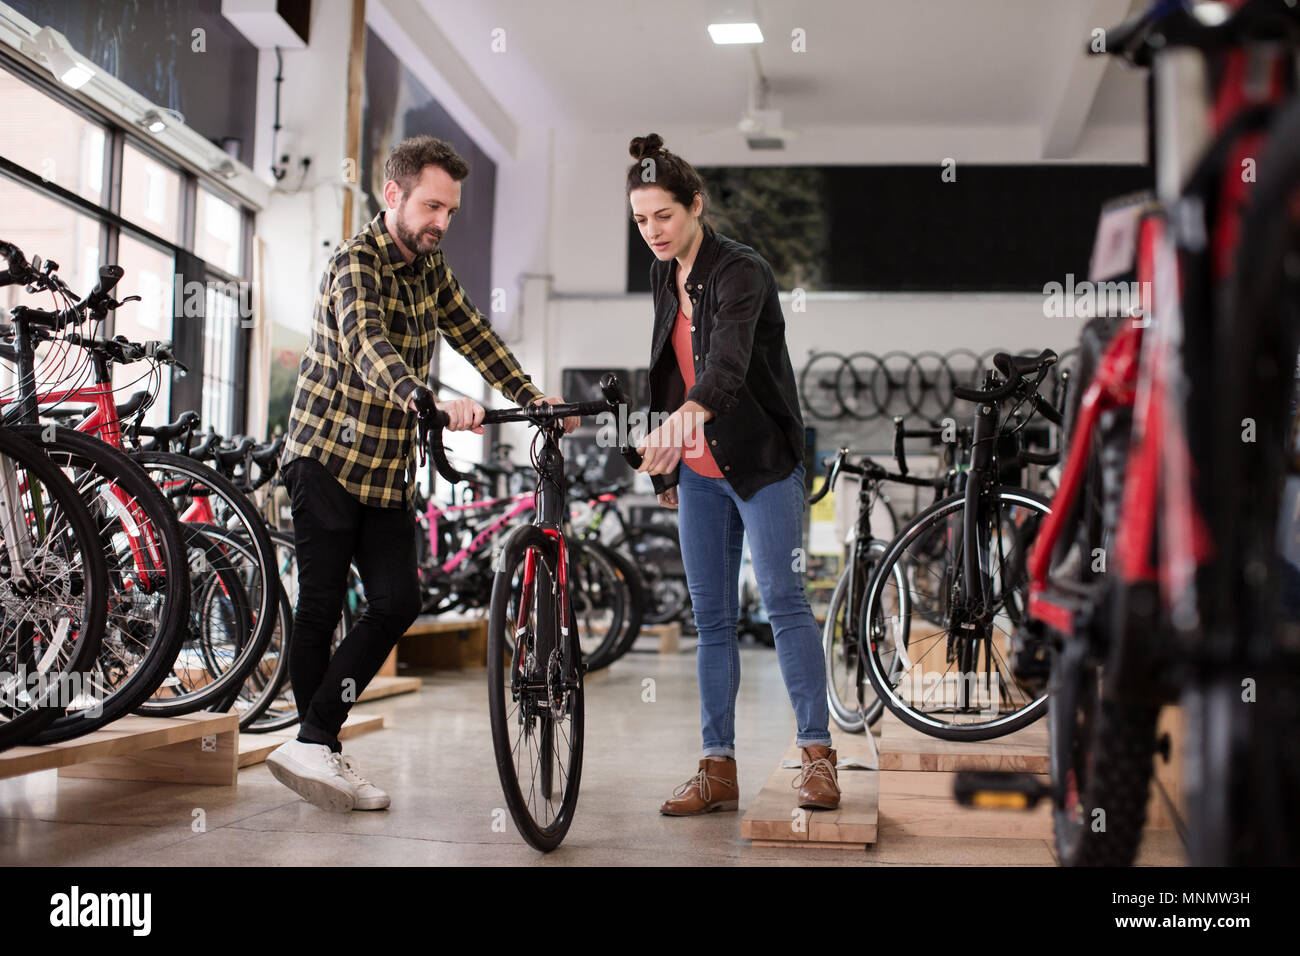 A Bike Store Small Business Owner Serving Customer In A Bike Store Stock Photo